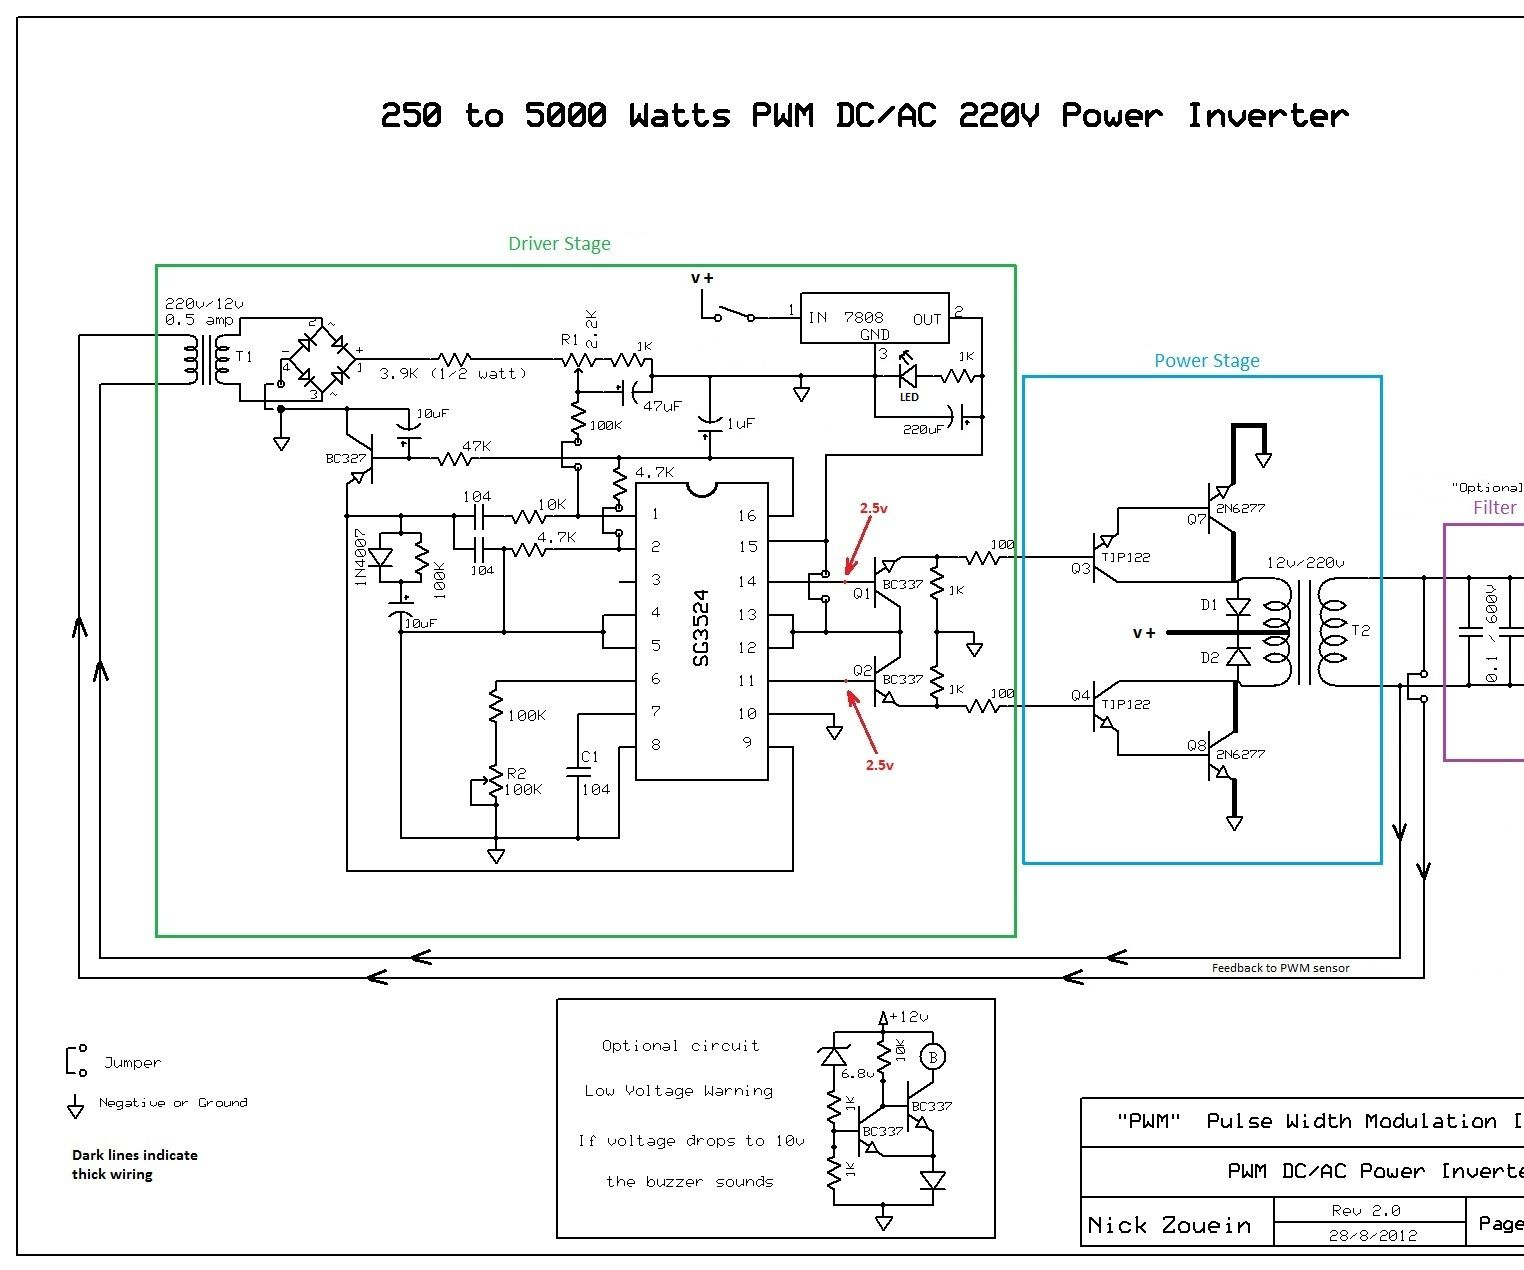 250 to 5000 watts pwm dc ac 220v power inverter pin 300w atx schematic diagram on pinterest [ 1524 x 1270 Pixel ]